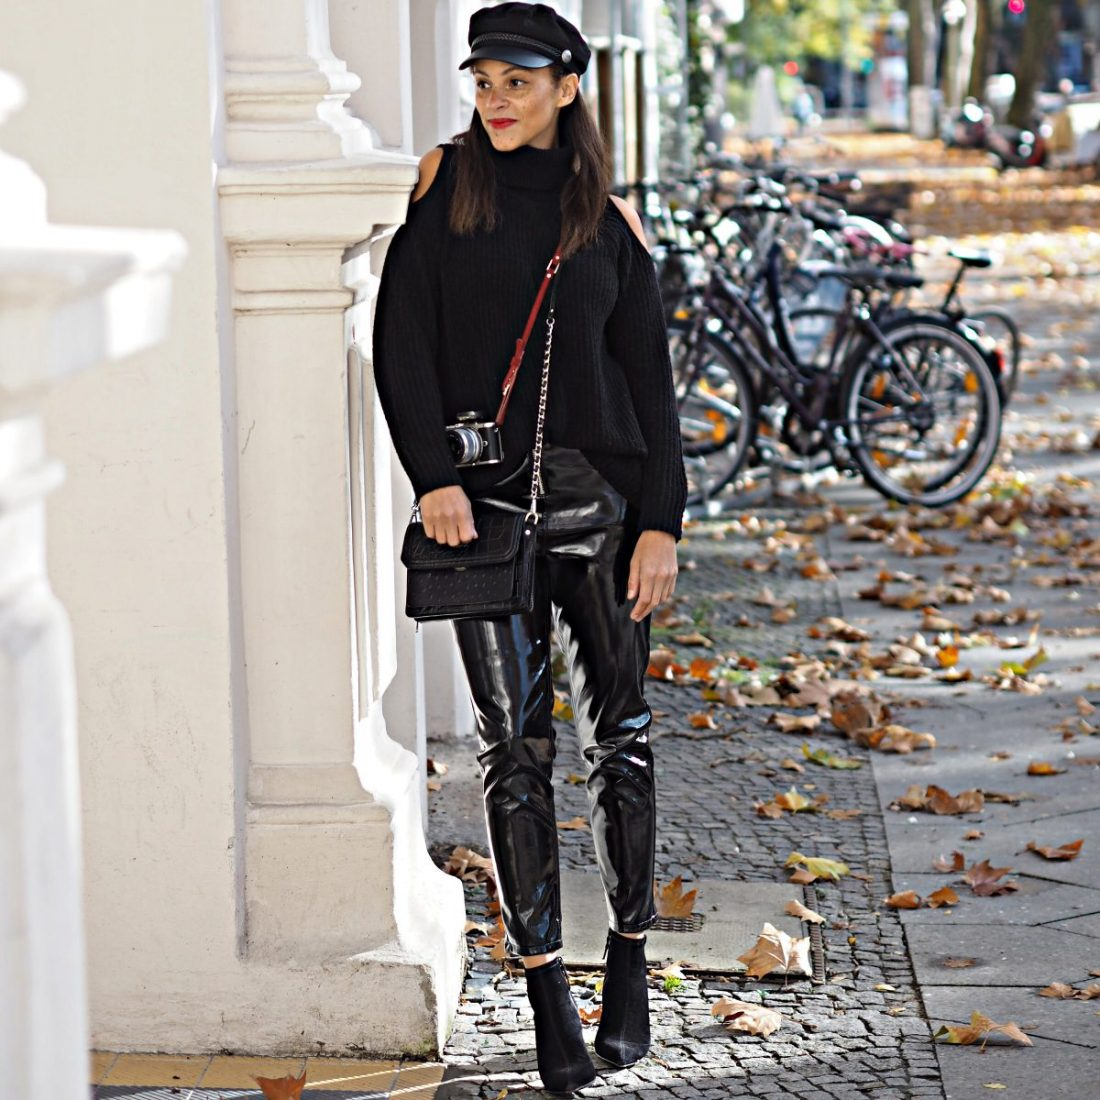 Outfit : Vinyl pants and Off the shoulder rollneck